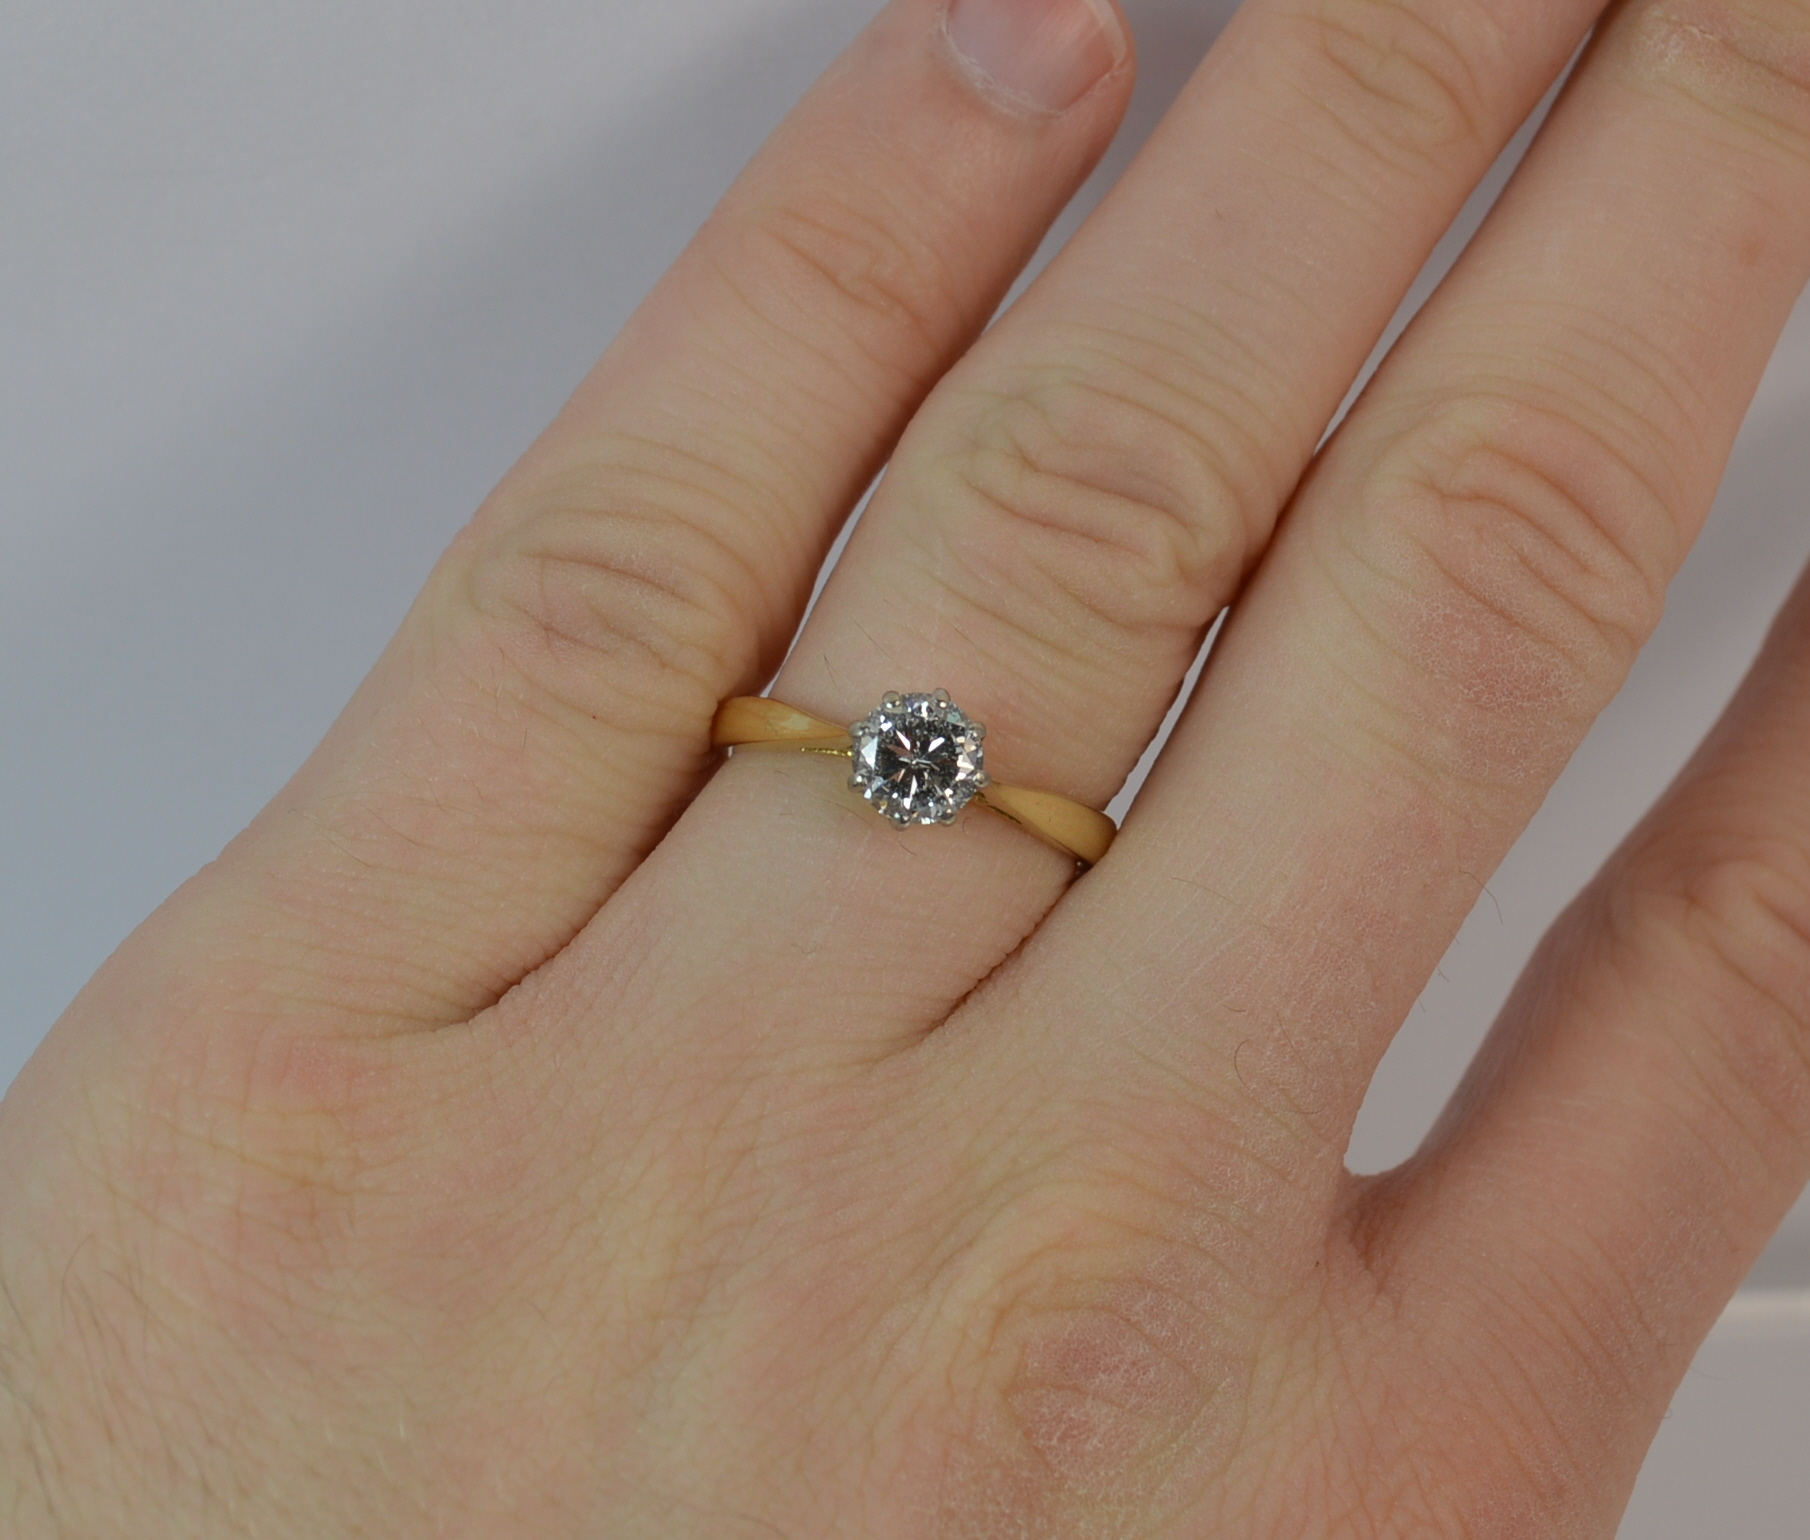 diamond en zoom round white to mv rings gold carat cut kaystore zm solitaire kay ring hover